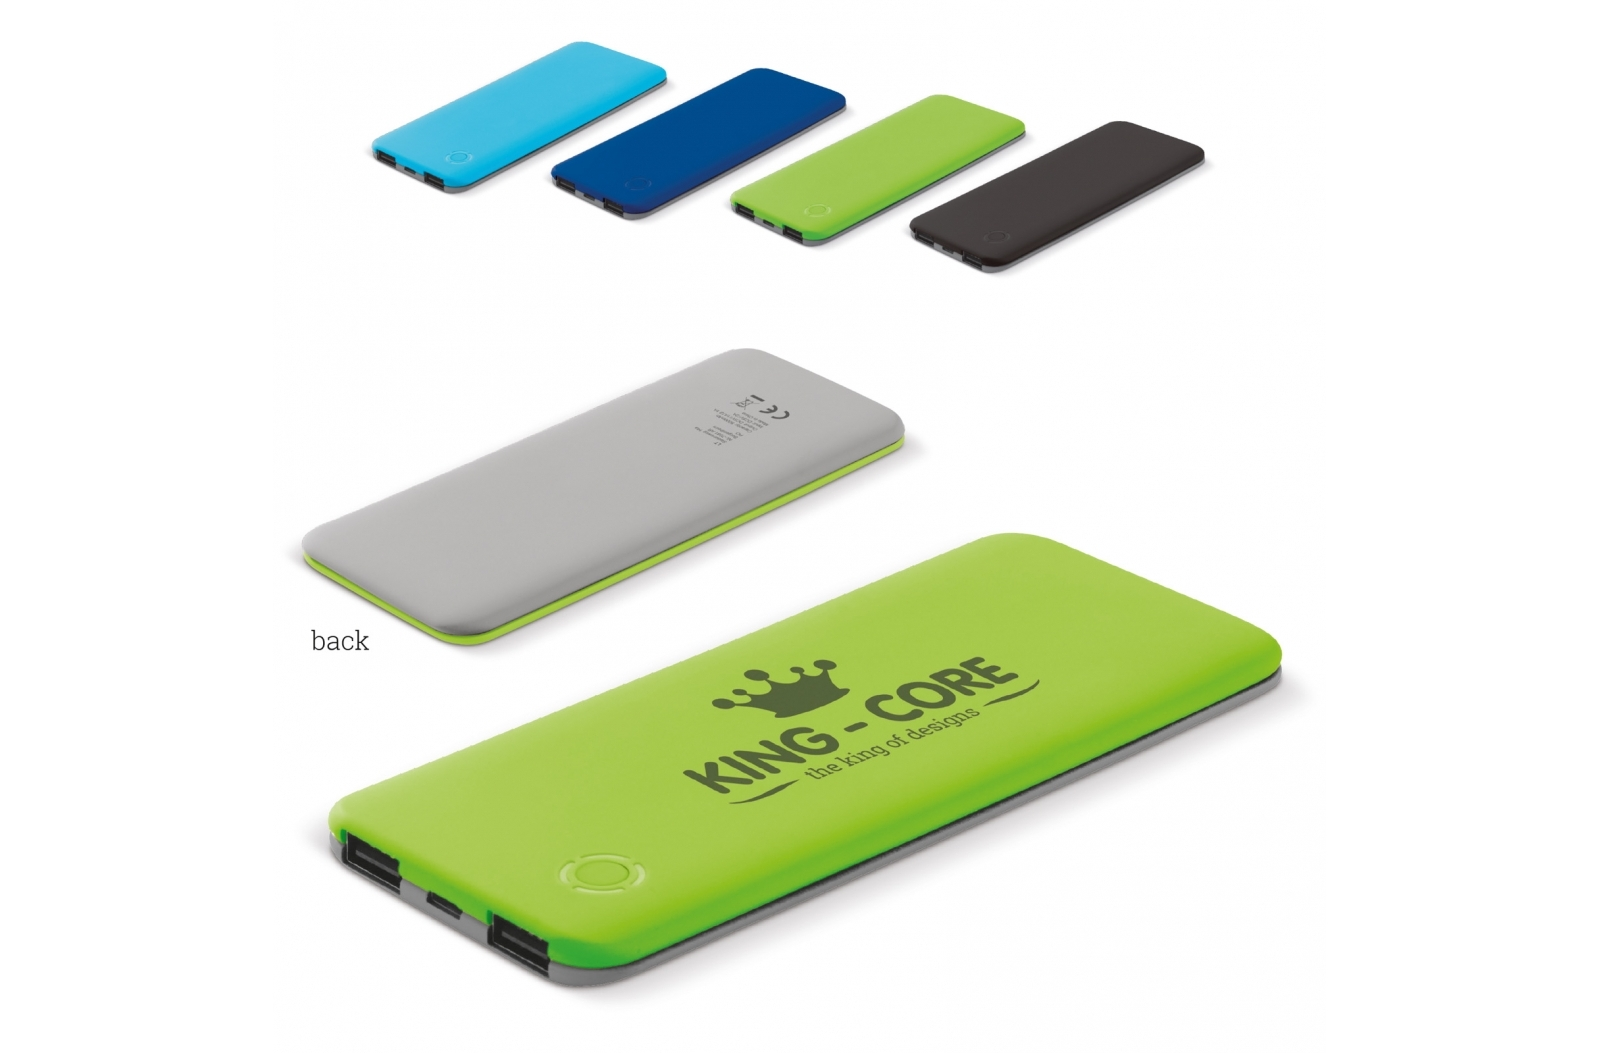 Powerbank Blade 5000mAh